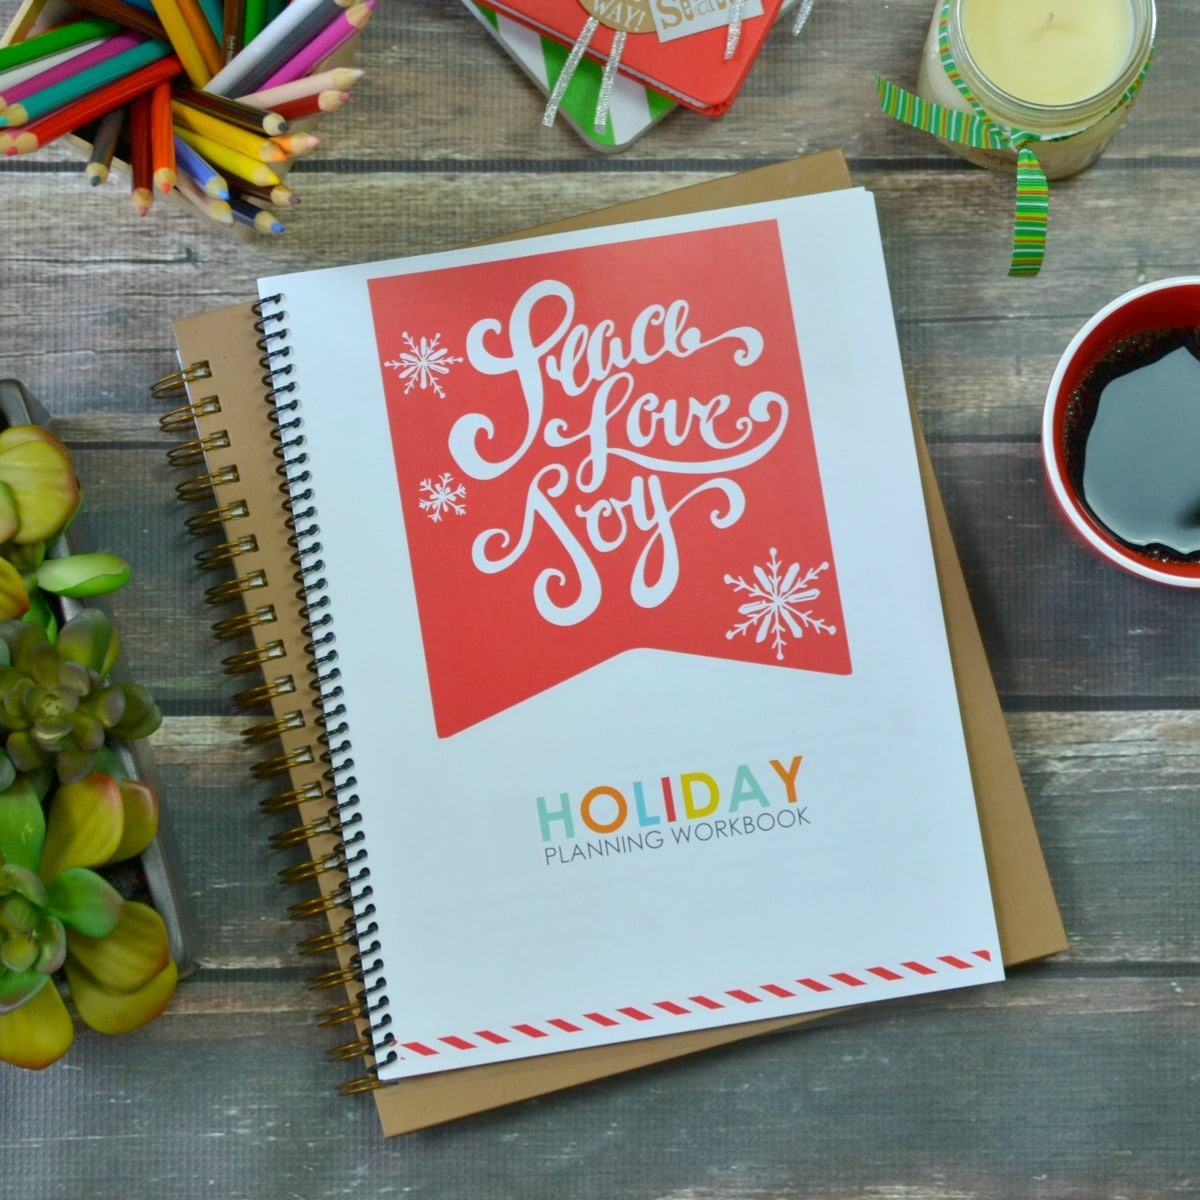 The Living Well Holiday planner is the perfect way to get organized for the holidays